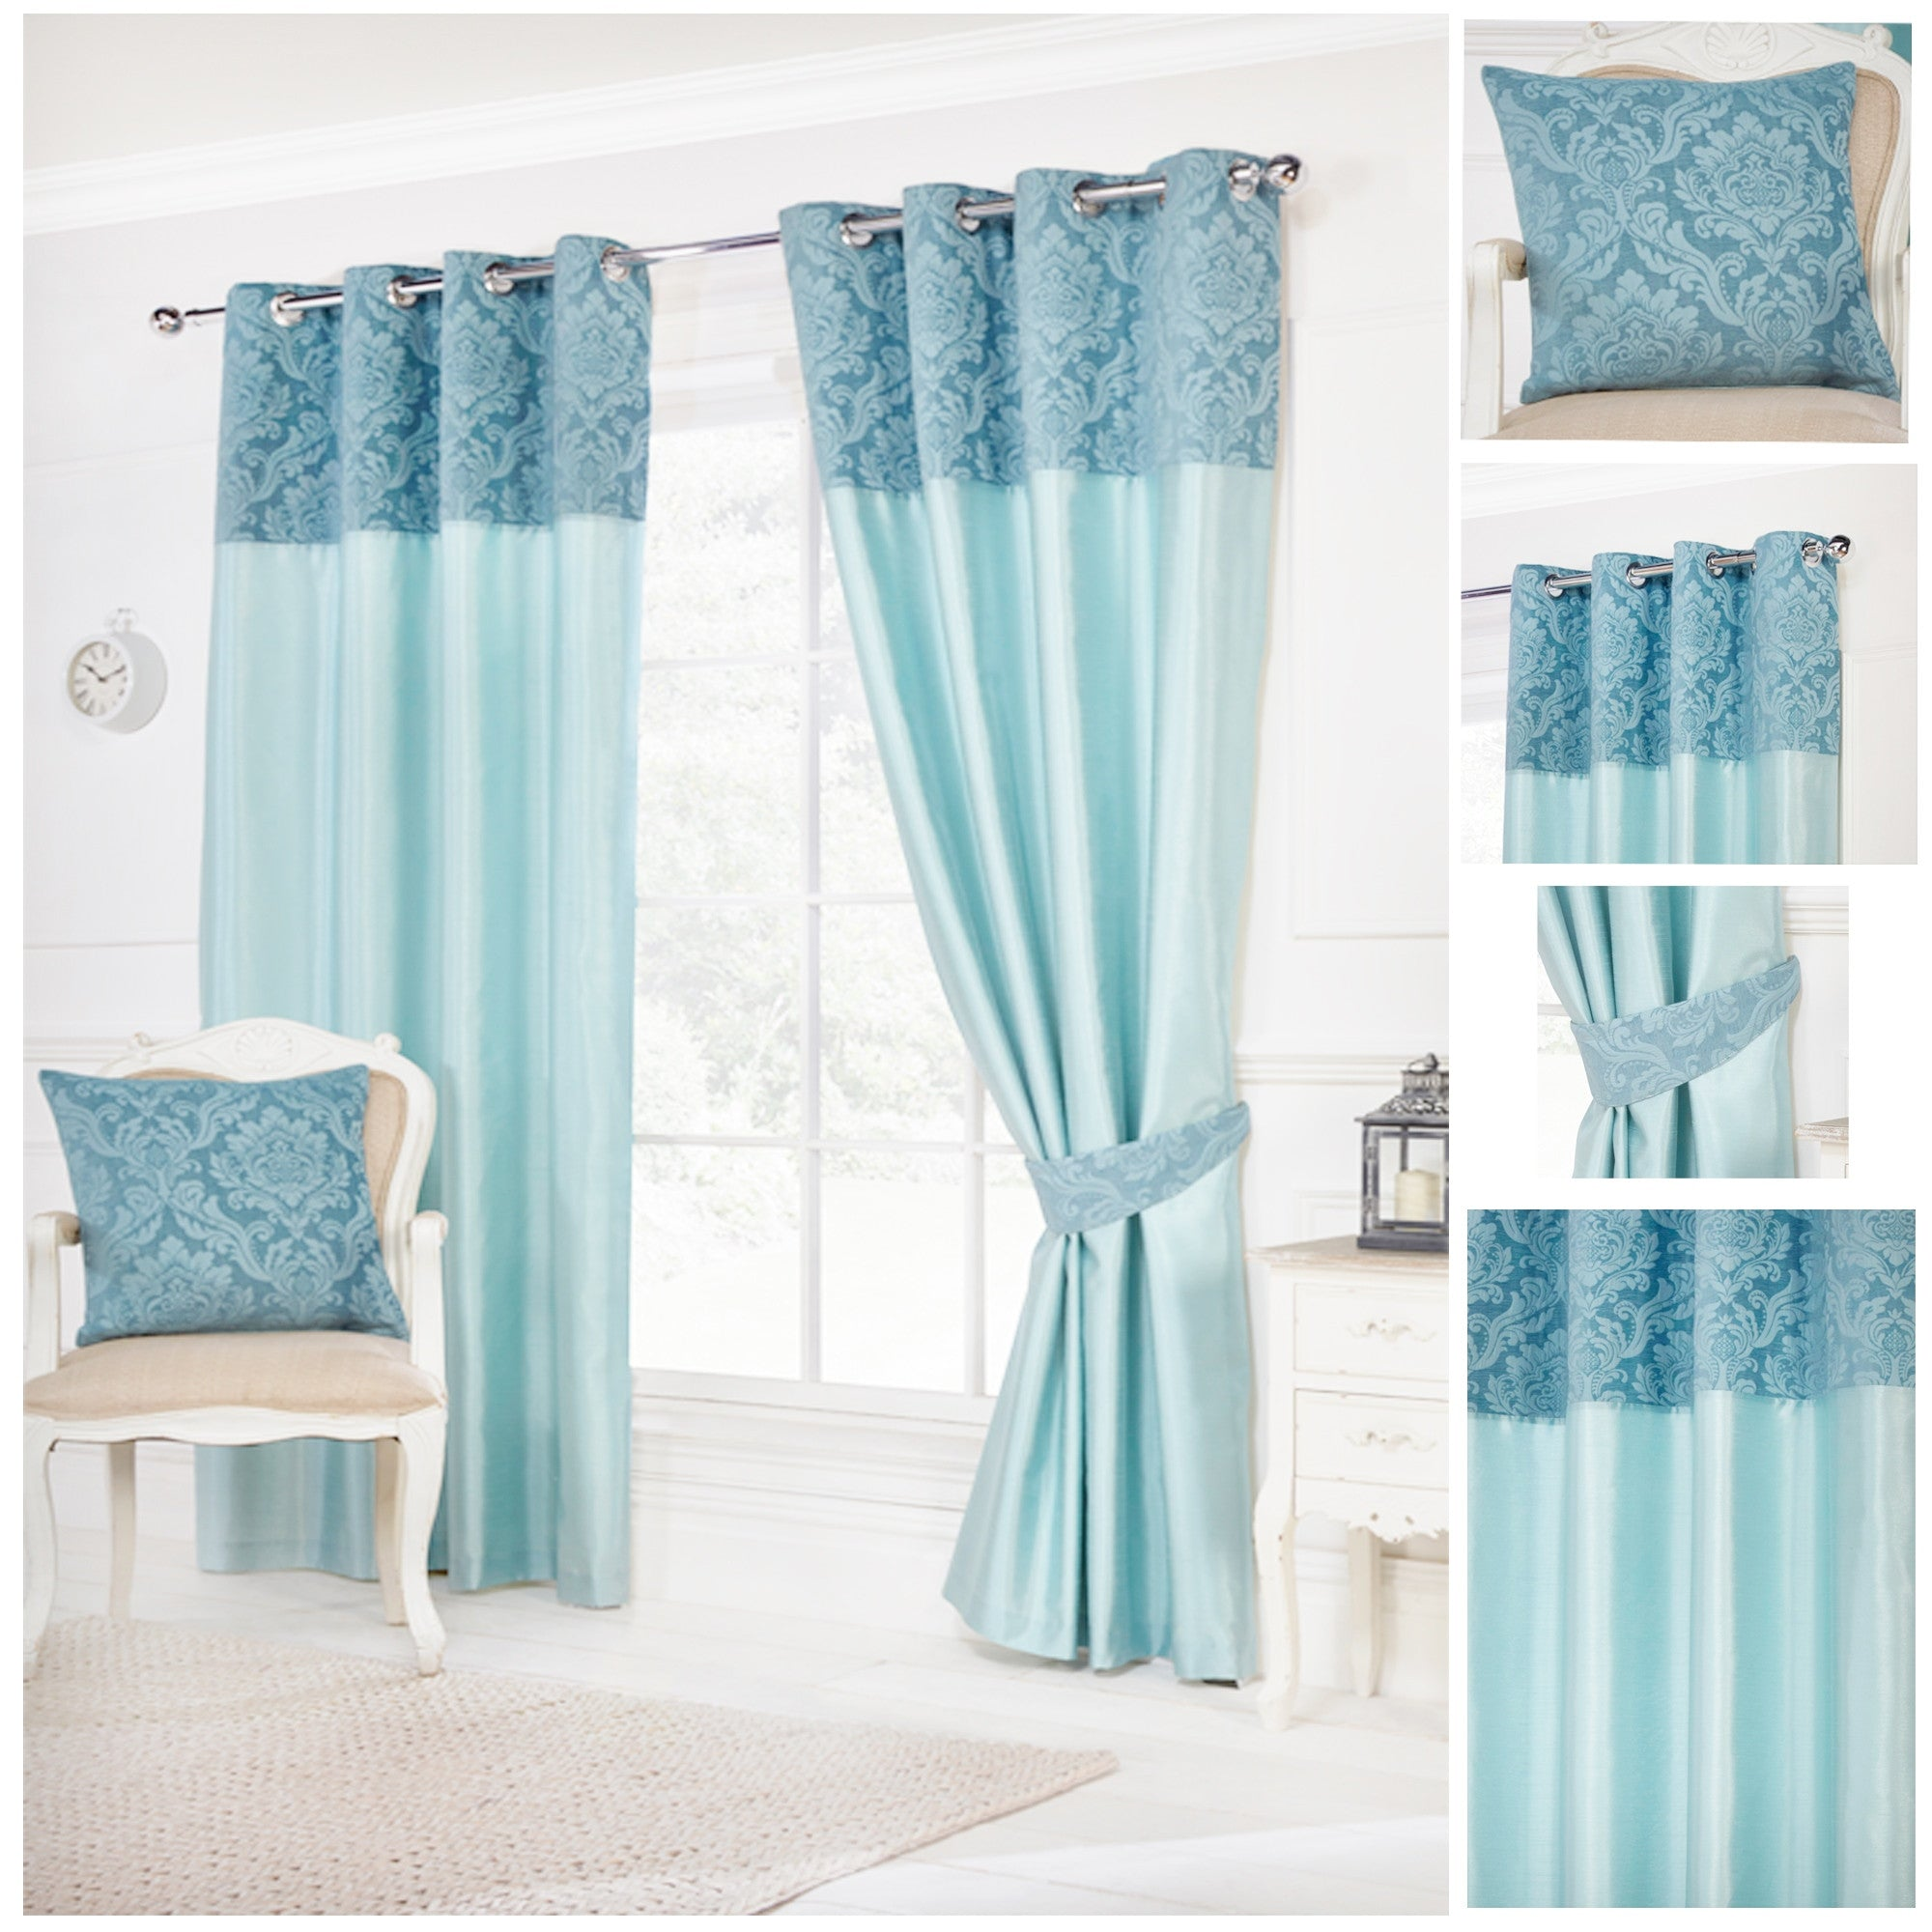 burn arabesque teal on product park curtains garden orders shipping panel overstock out home curtain madison sheer free emerson over